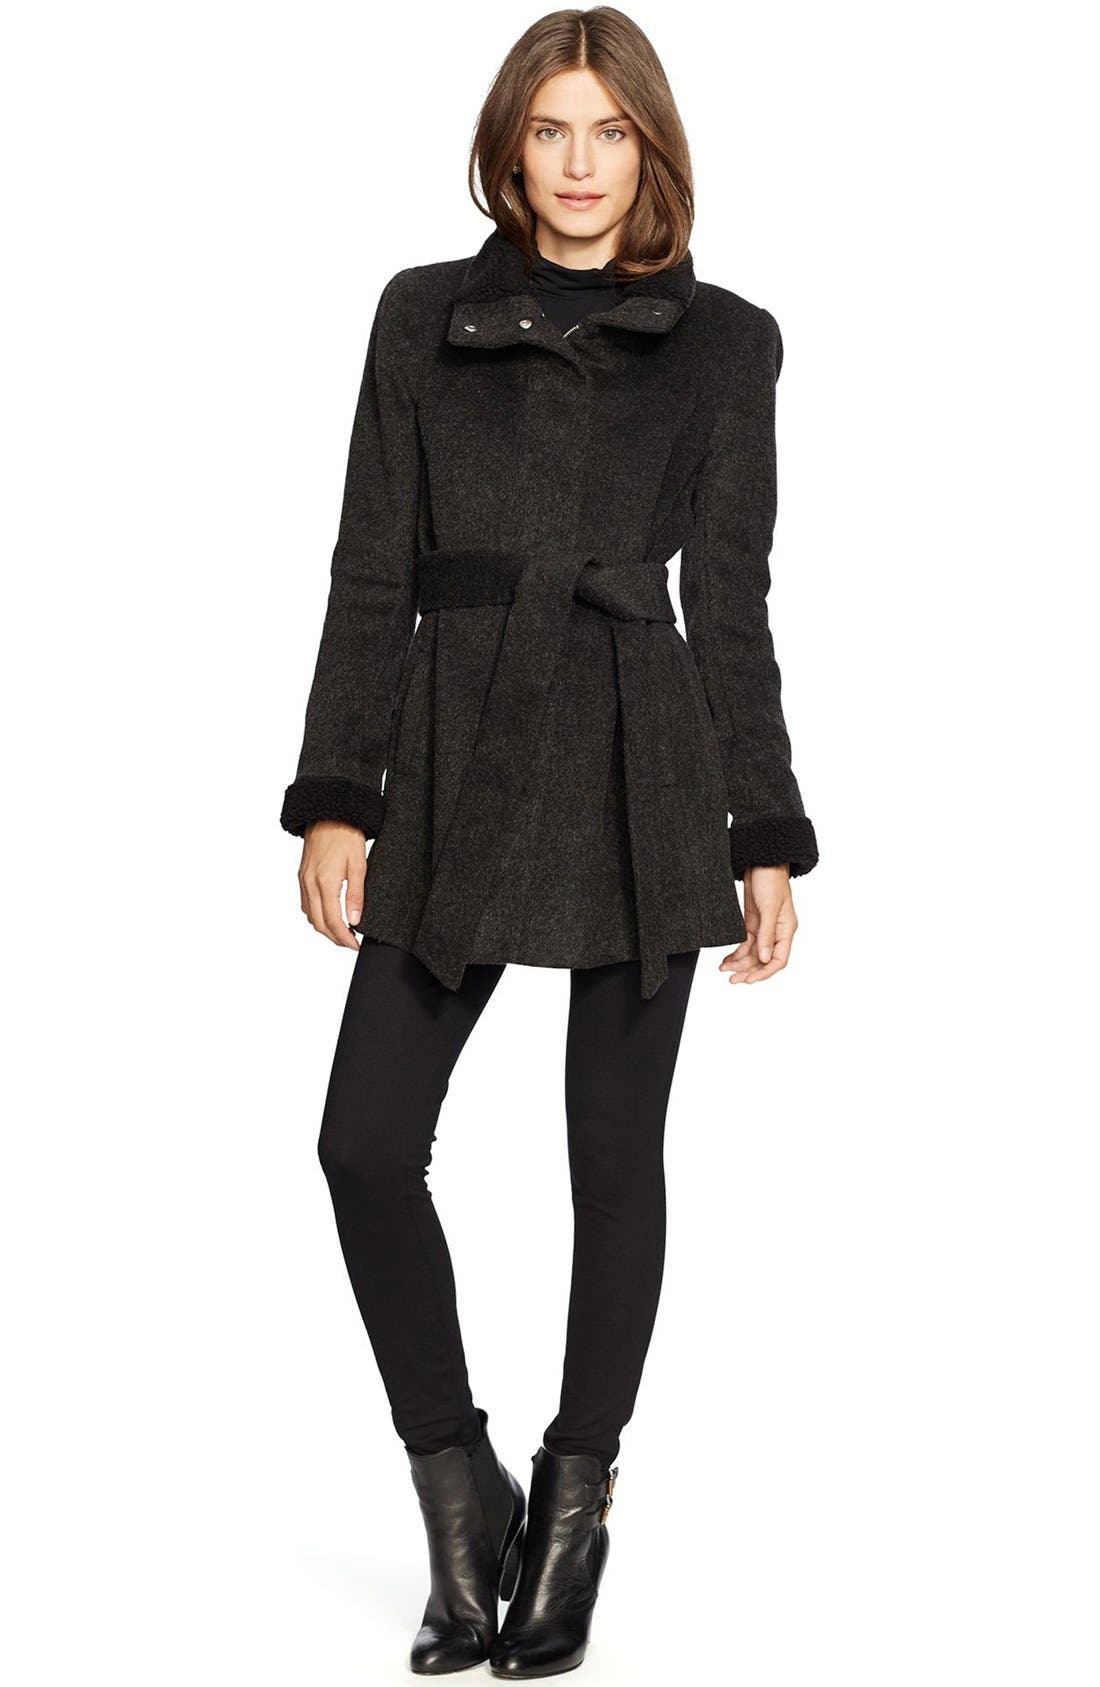 LAUREN RALPH LAUREN,                             Faux Shearling Trim Belted Wool Blend Coat,                             Main thumbnail 1, color,                             001